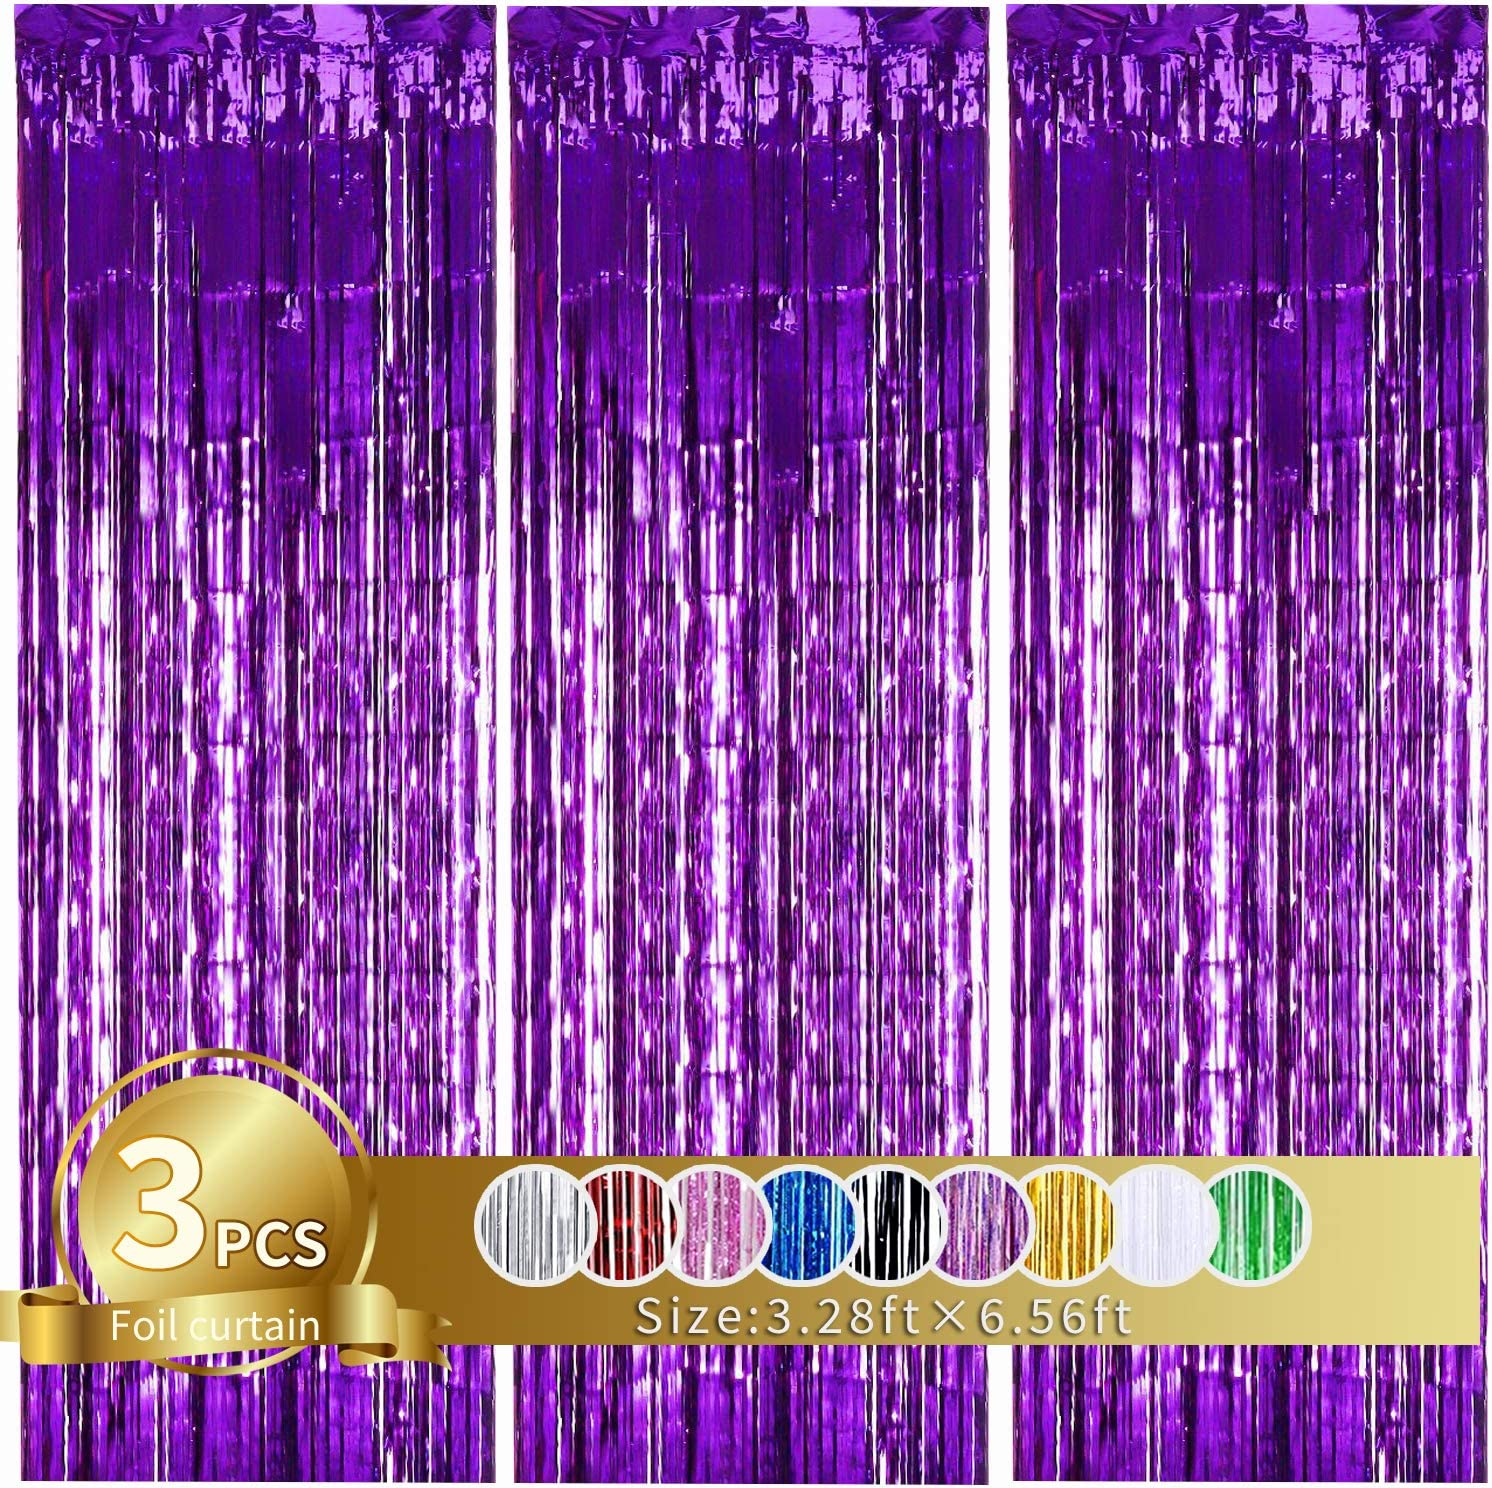 3Pcs Purple Metallic Tinsel Foil Fringe Curtains,3.28 x 6.56ft Purple Photo Booth Backdrop Curtain,Photo Booth Props,Ideal Bachelorette Party Supplies,Birthday,Graduation,Christmas,New Year Decor